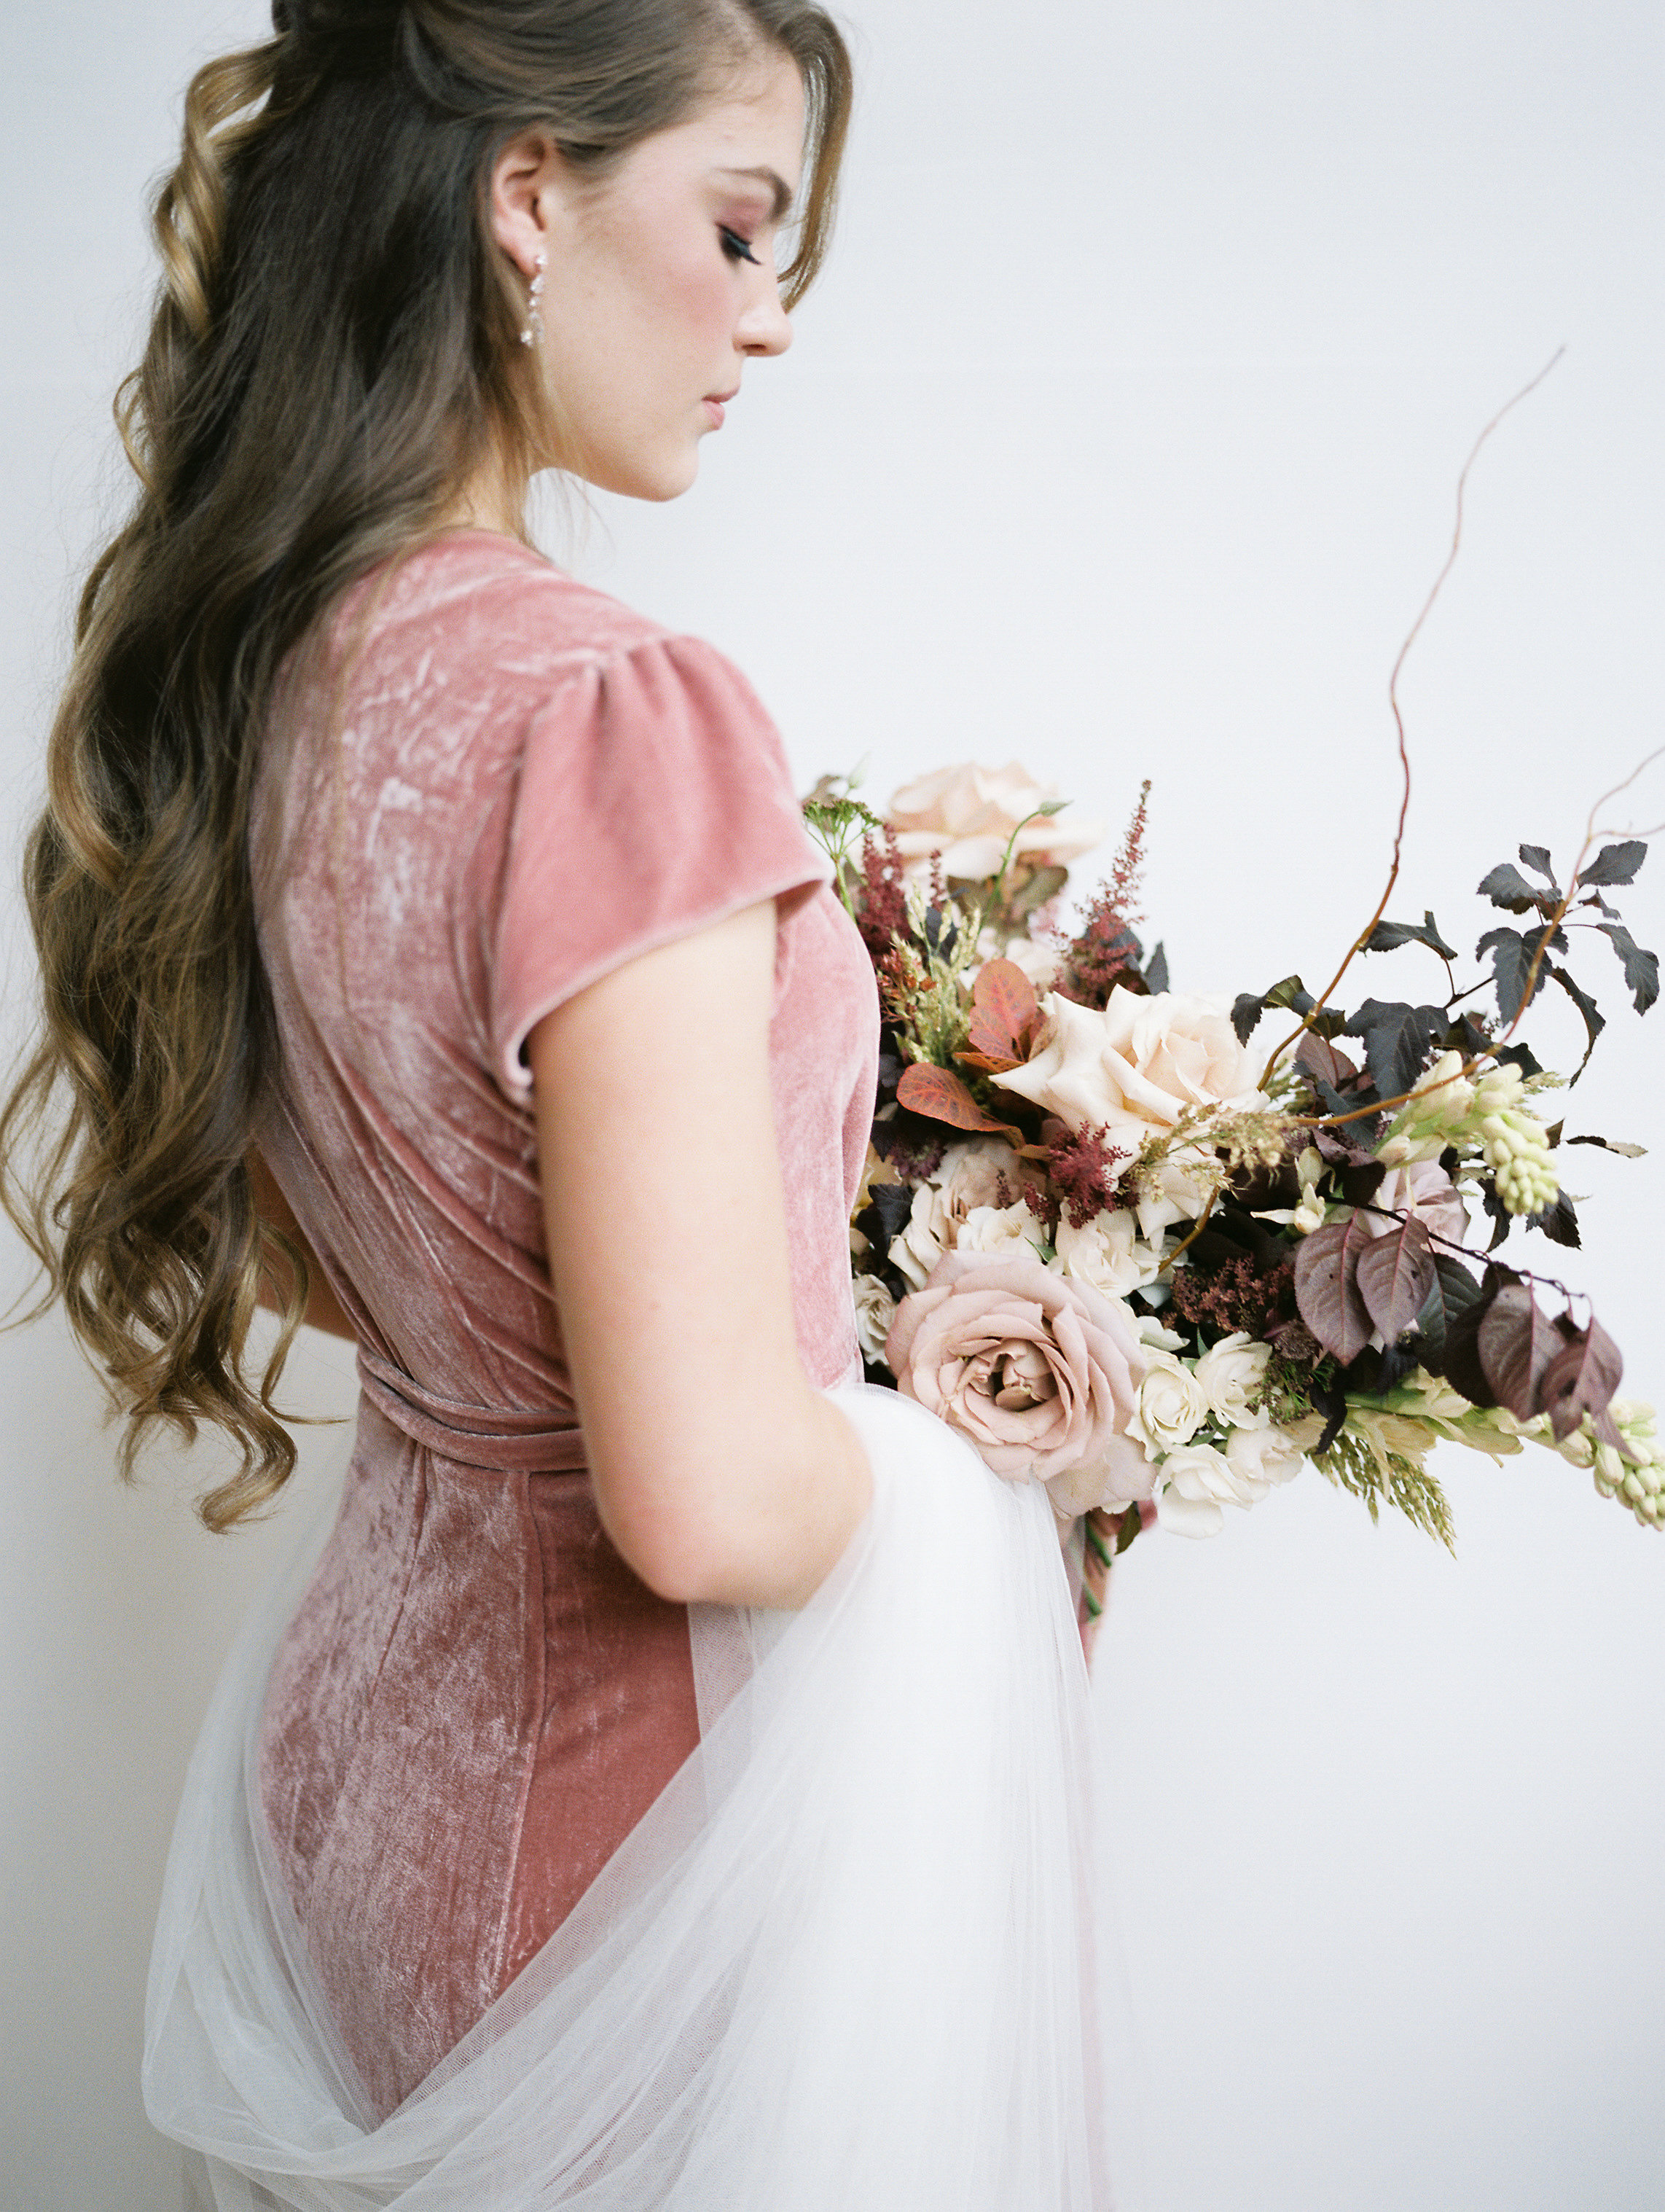 WHEN-SHE-KNEW-PHOTOGRAPHY-STYLED-WEDDING-EDITORIAL-OREGON-60.jpg